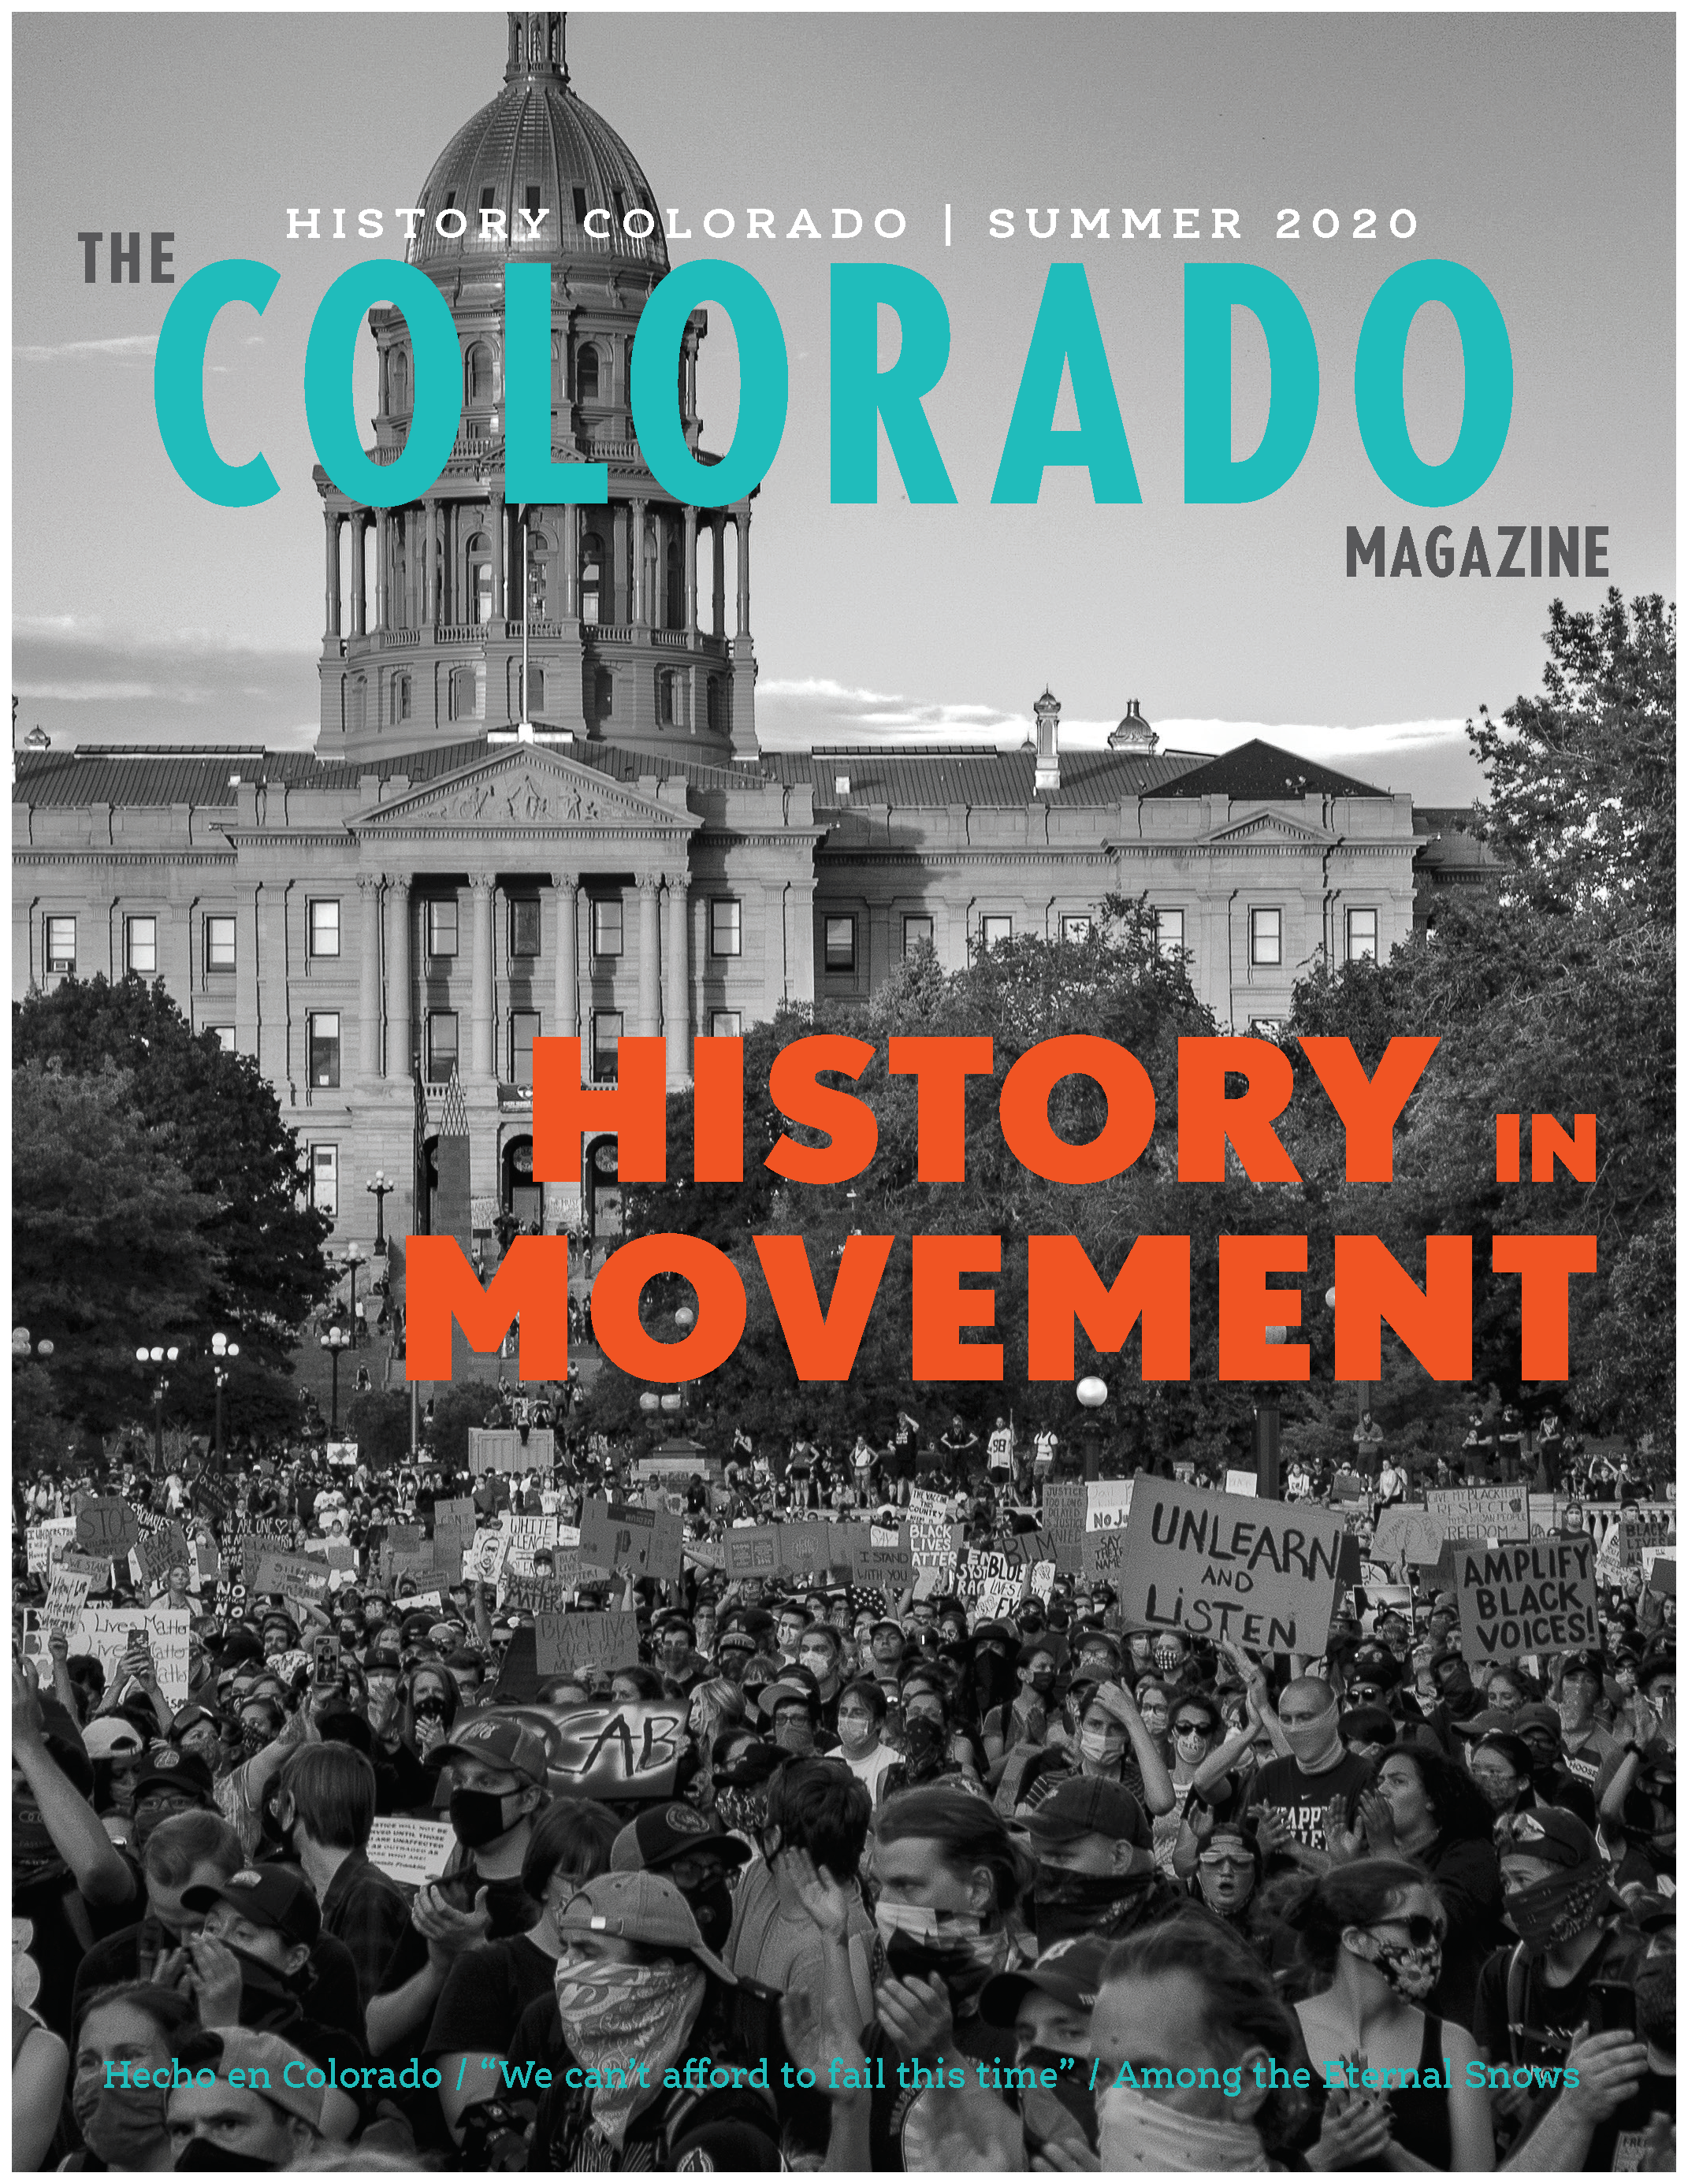 Colorado Magazine Summer 2020 Cover